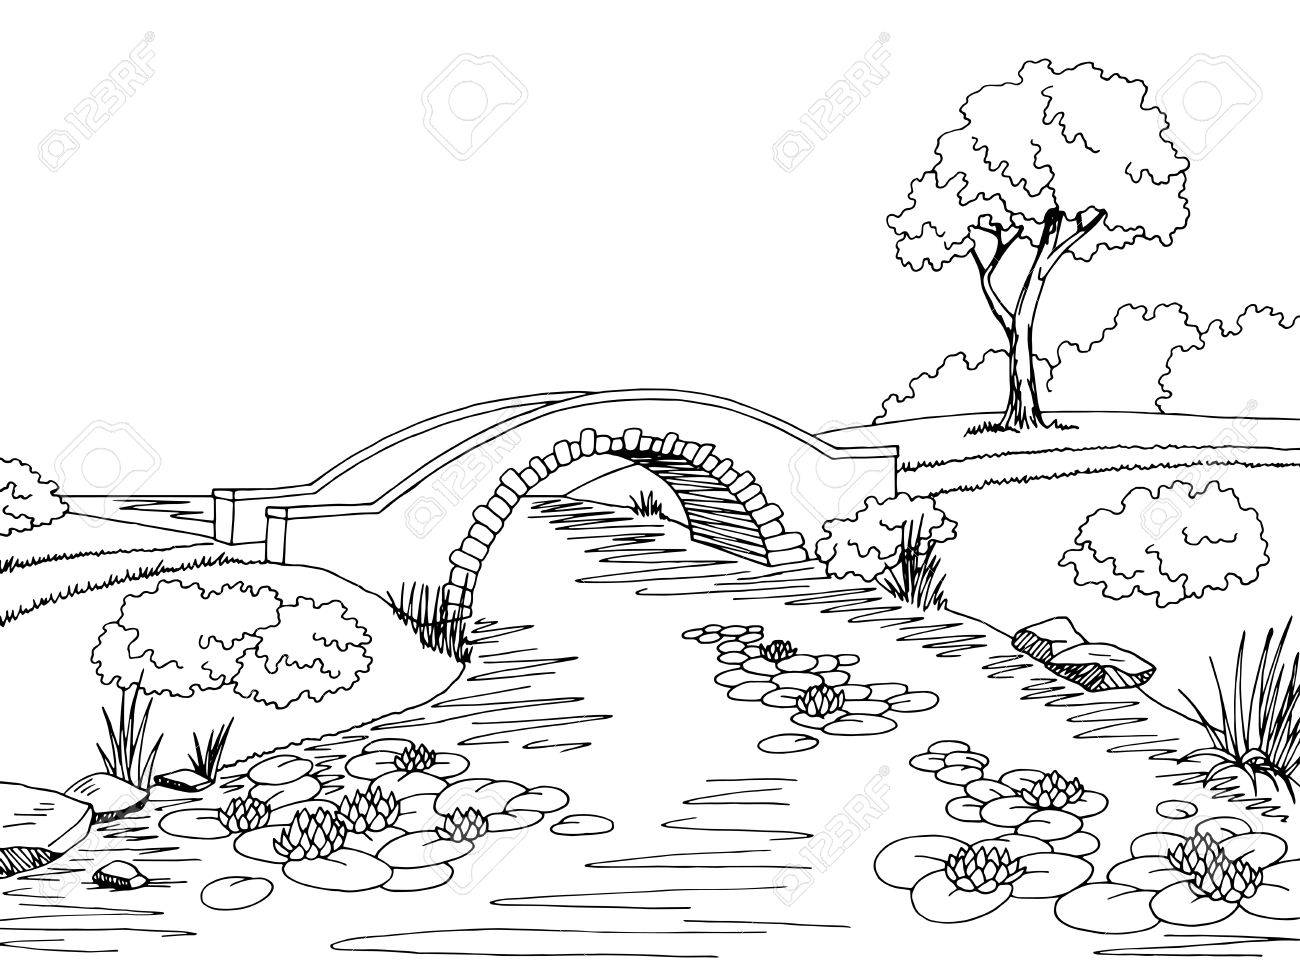 Bridge graphic black white landscape sketch illustration vector.